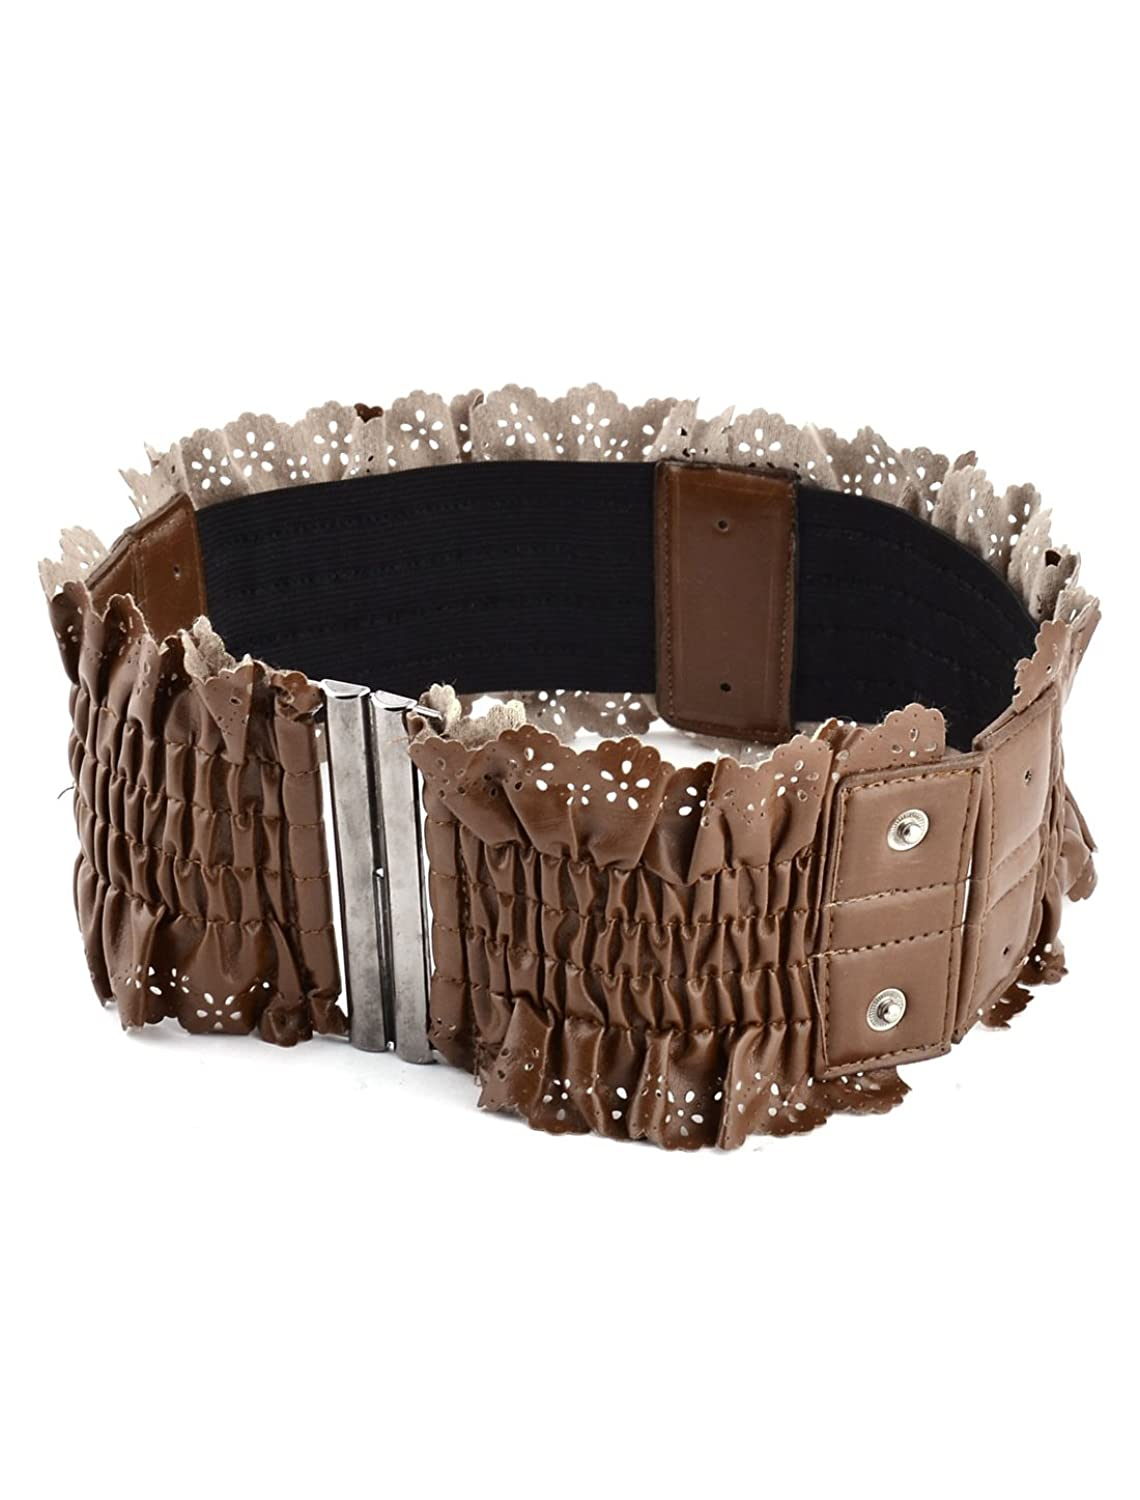 uxcell Women Ladies Outdoor Household Lacy Elastic Stretchy Wide Buckle Waistband Belt